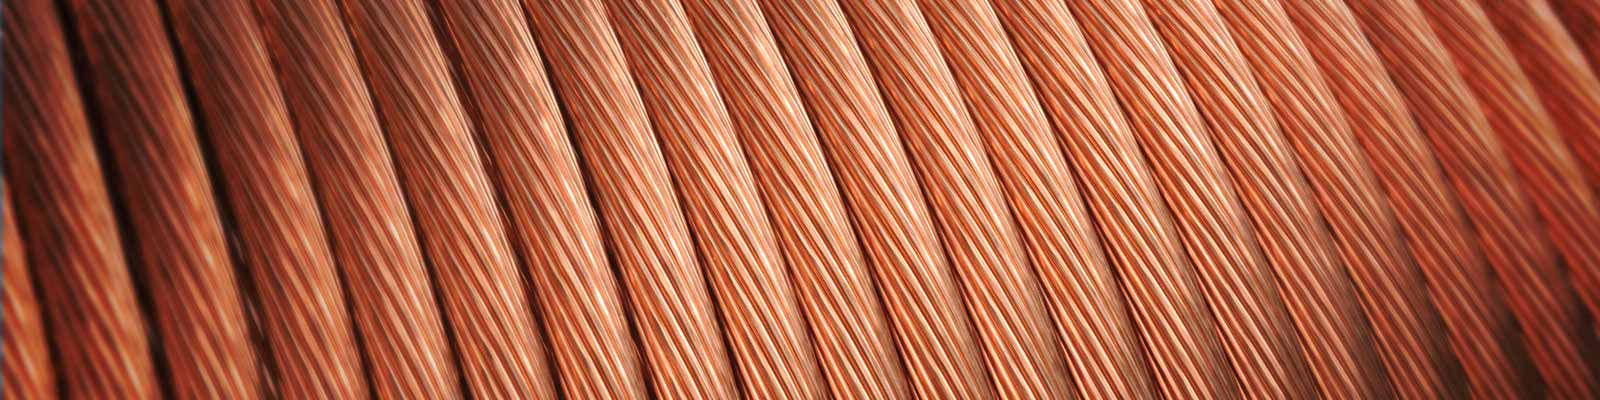 Stranded Bare Copper